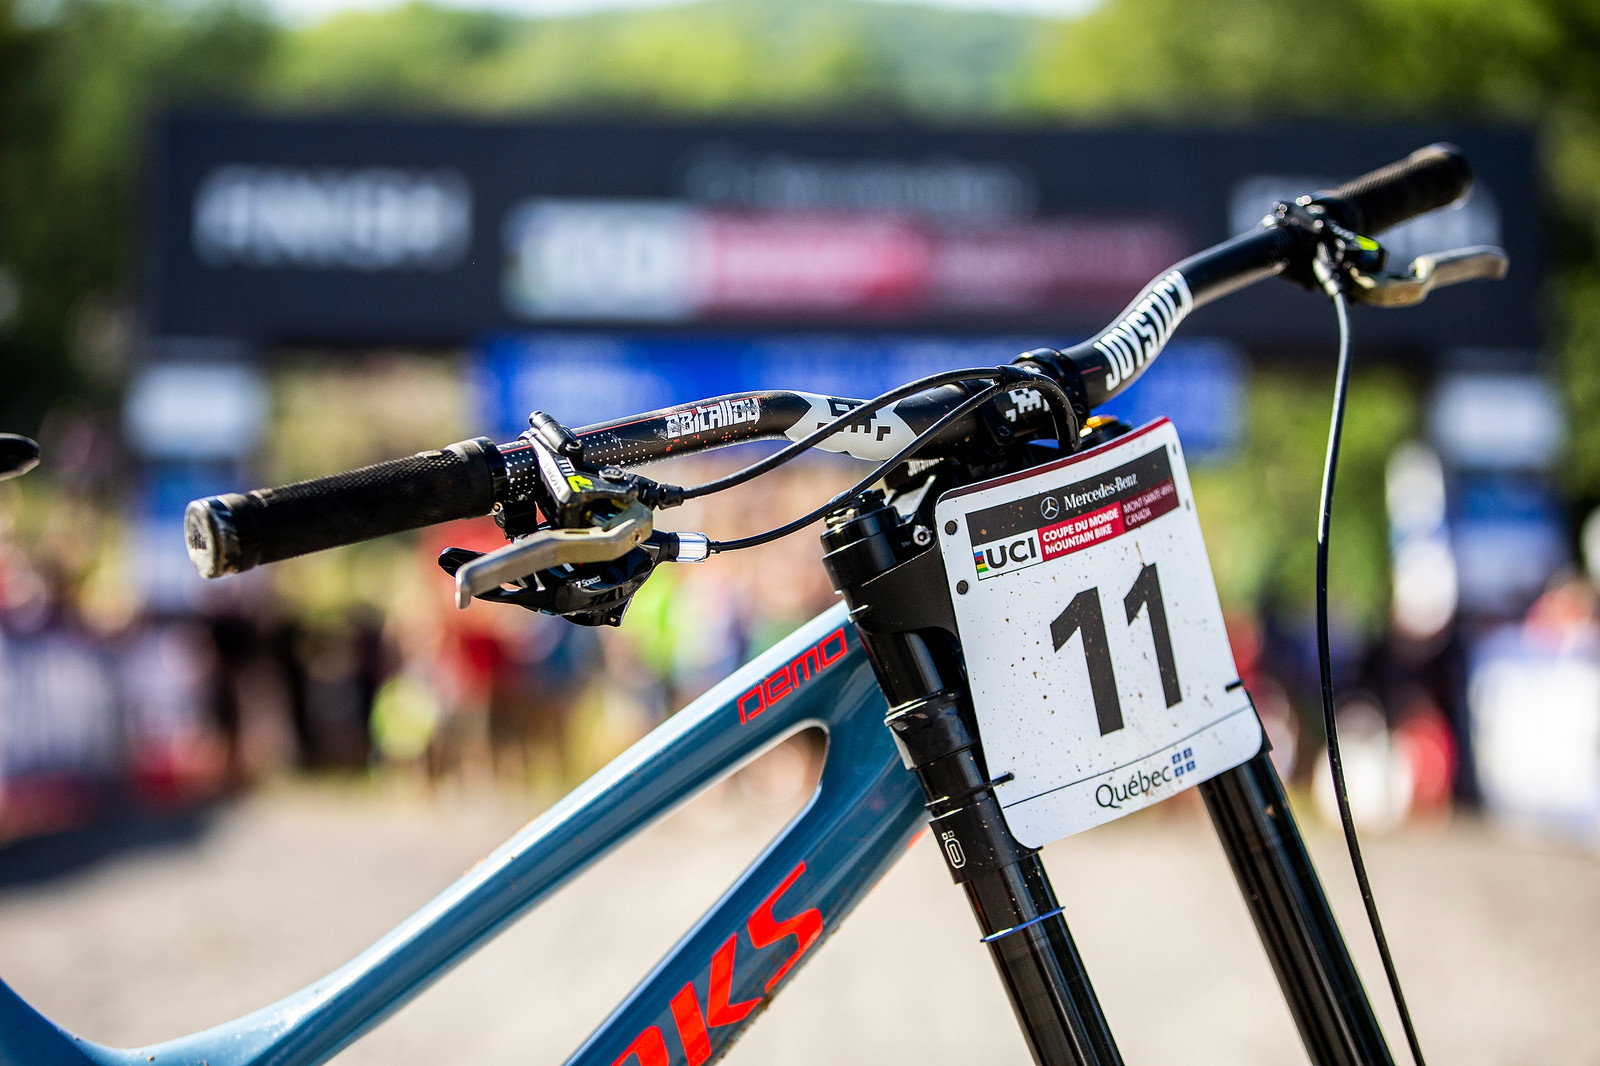 WINNING BIKE: Loic Bruni's Specialized Demo at Mont-Sainte-Anne - MSA 2018 Winning Bike: Loic Bruni's Specialized Demo - Mountain Biking Pictures - Vital MTB